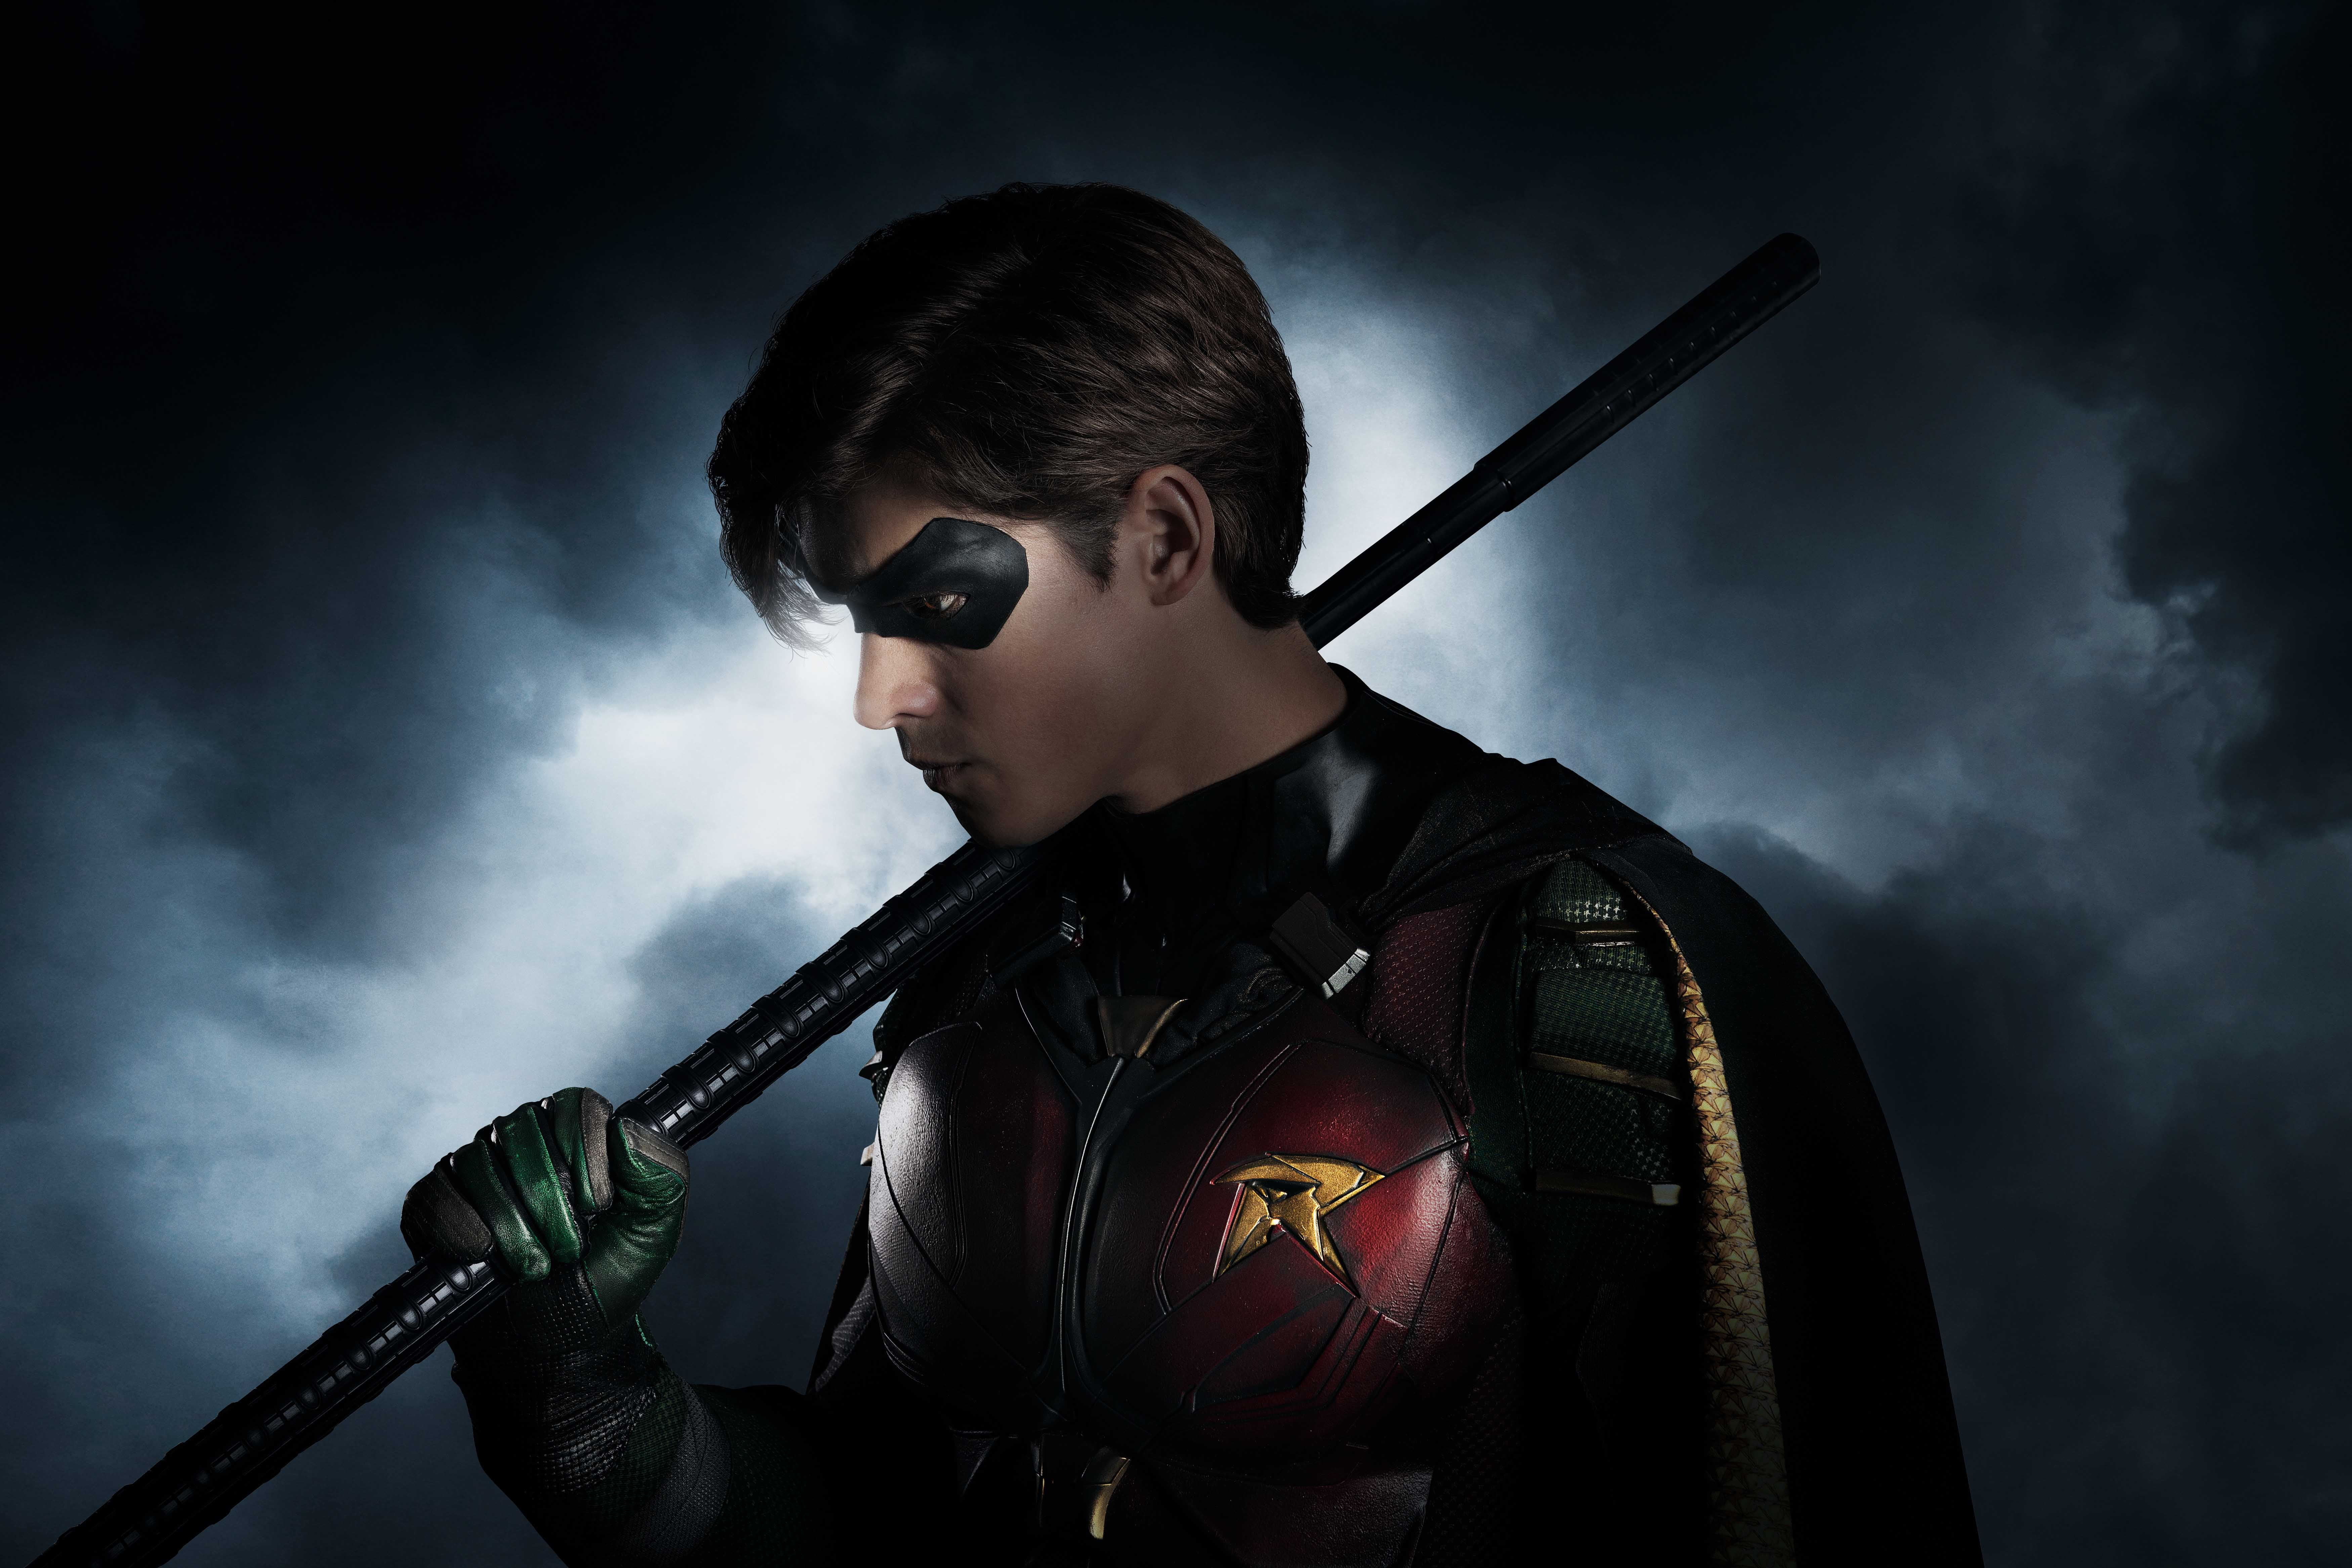 7000x4667 DC Robin wallpaper HD wallpaper | Wallpaper Flare